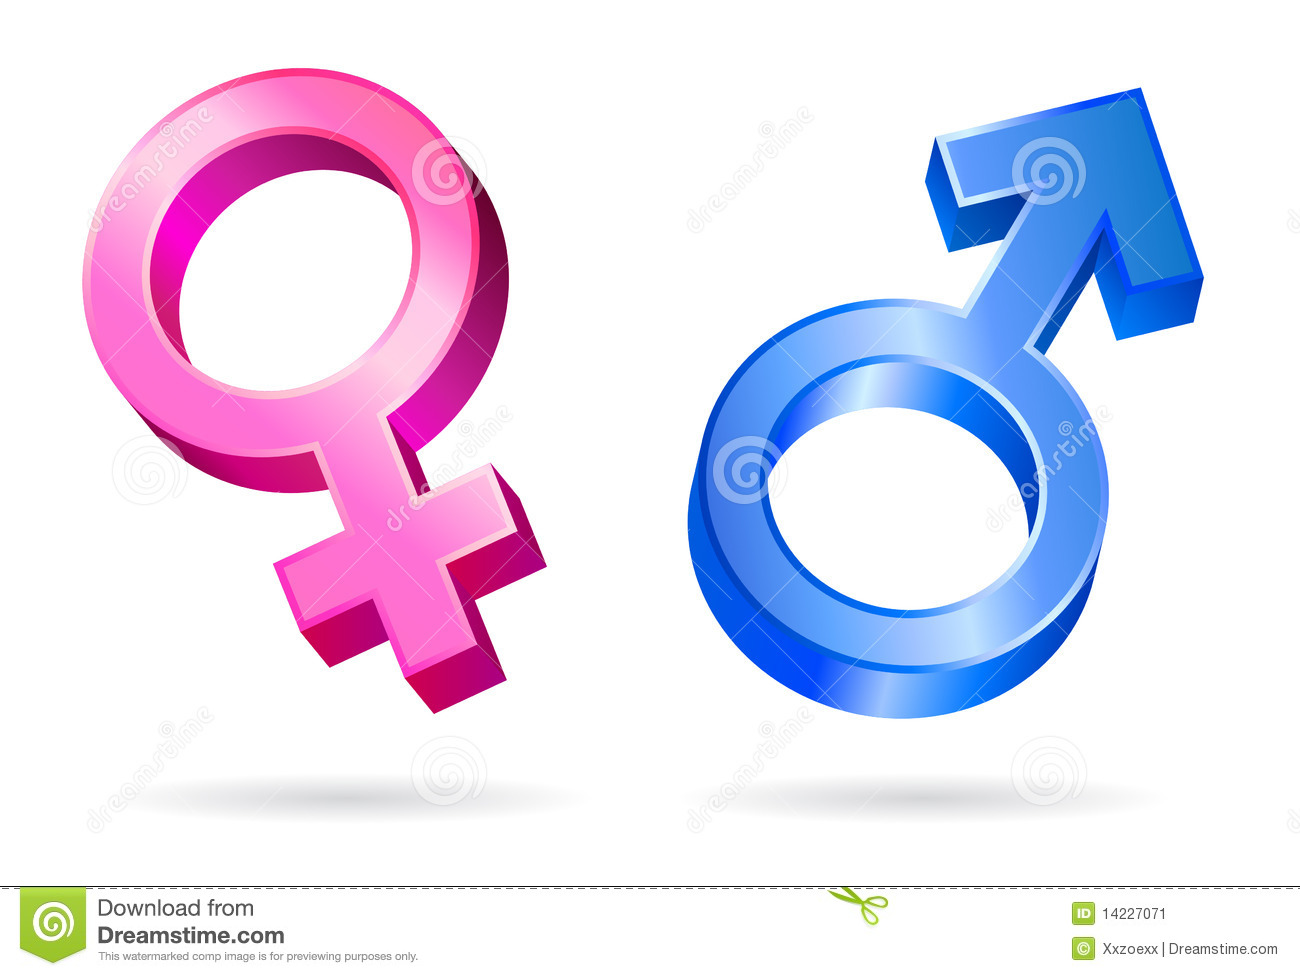 Male Female Gender Symbols Stock Vector Illustration Of Contrasts